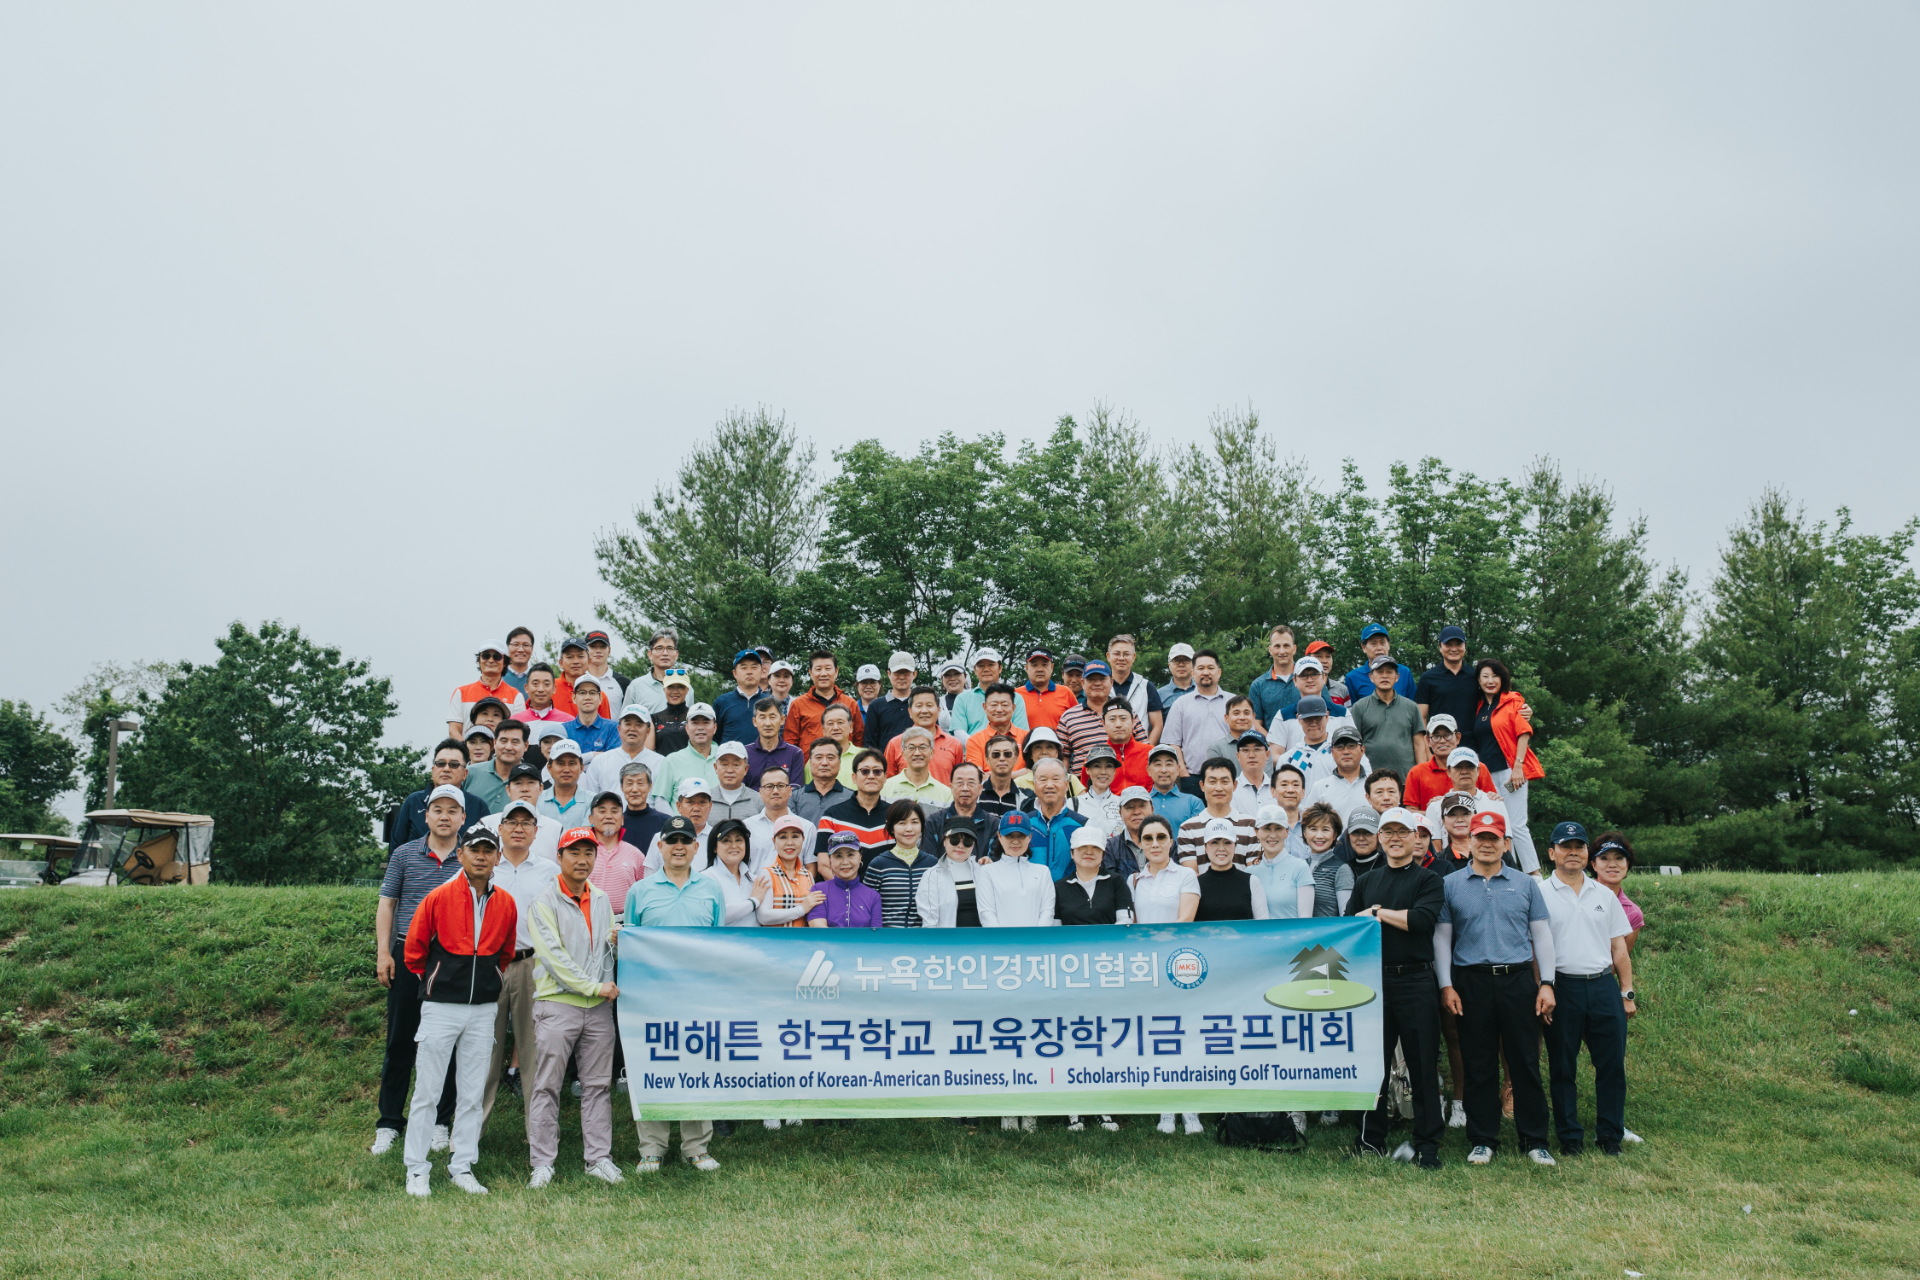 https://nykbi.com/new/wp-content/uploads/2019/07/190619-Scholarship-Fundraising-Golf-Tournament-011.jpg